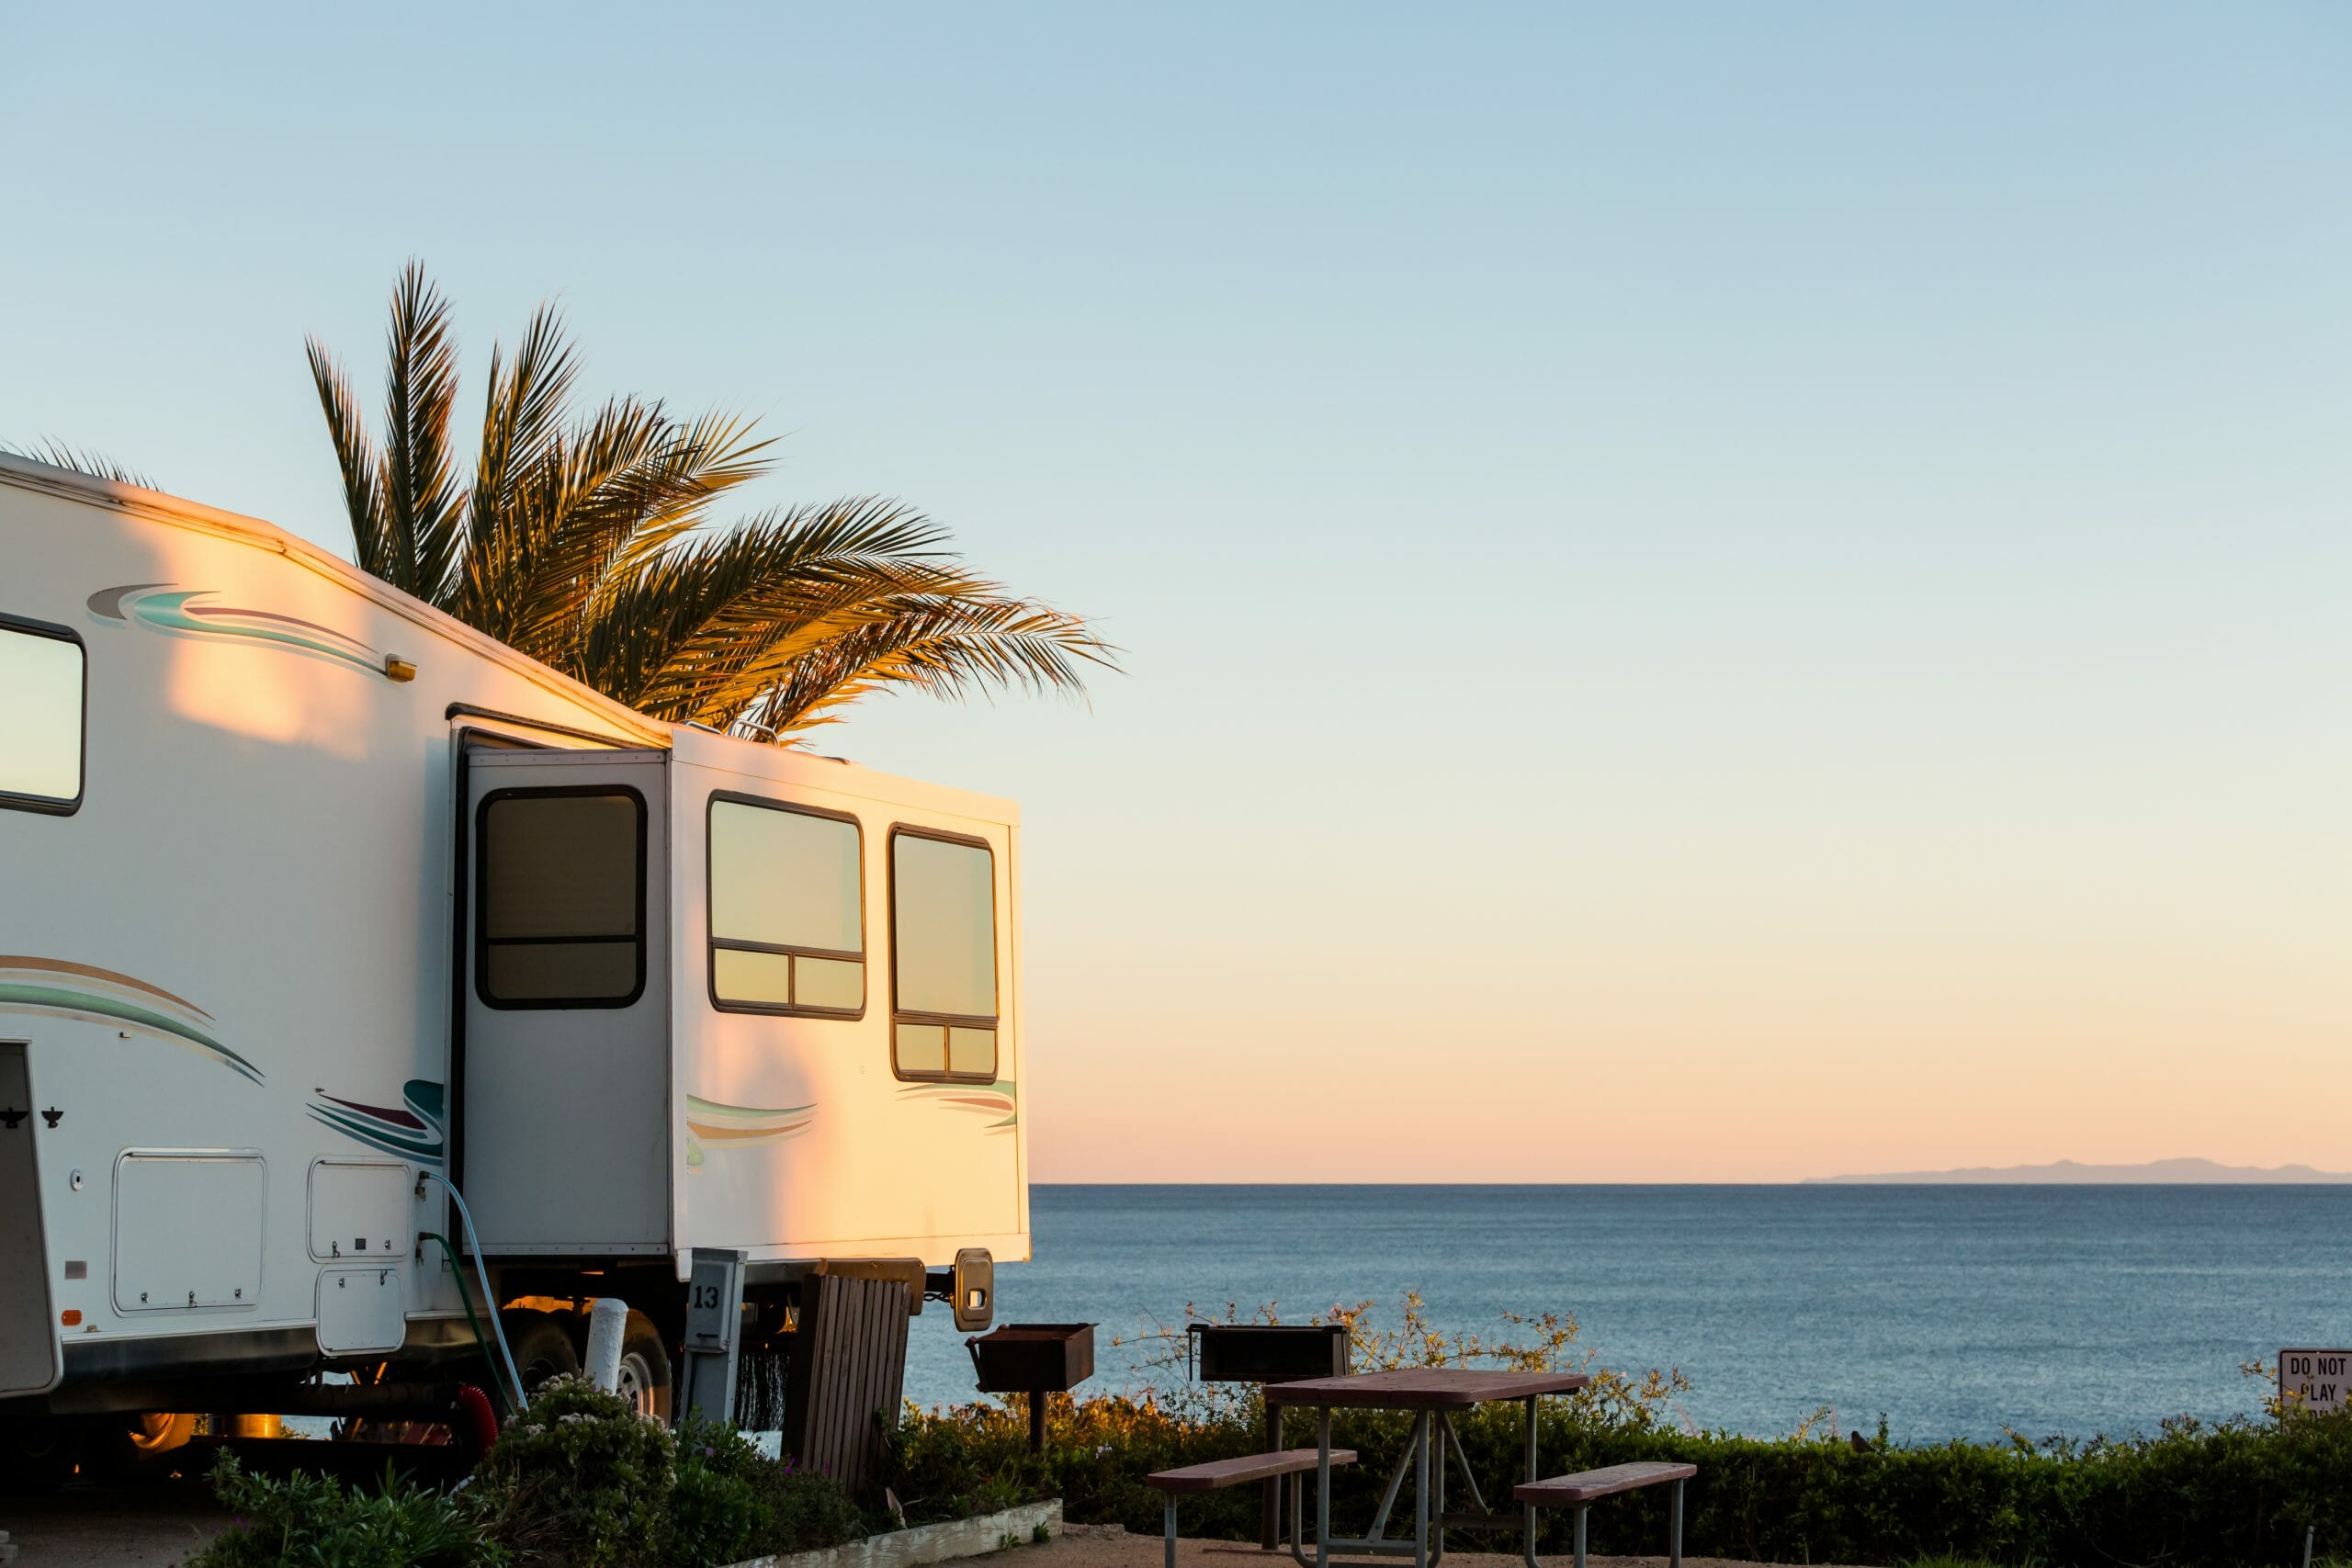 RV Parks in the warm sun